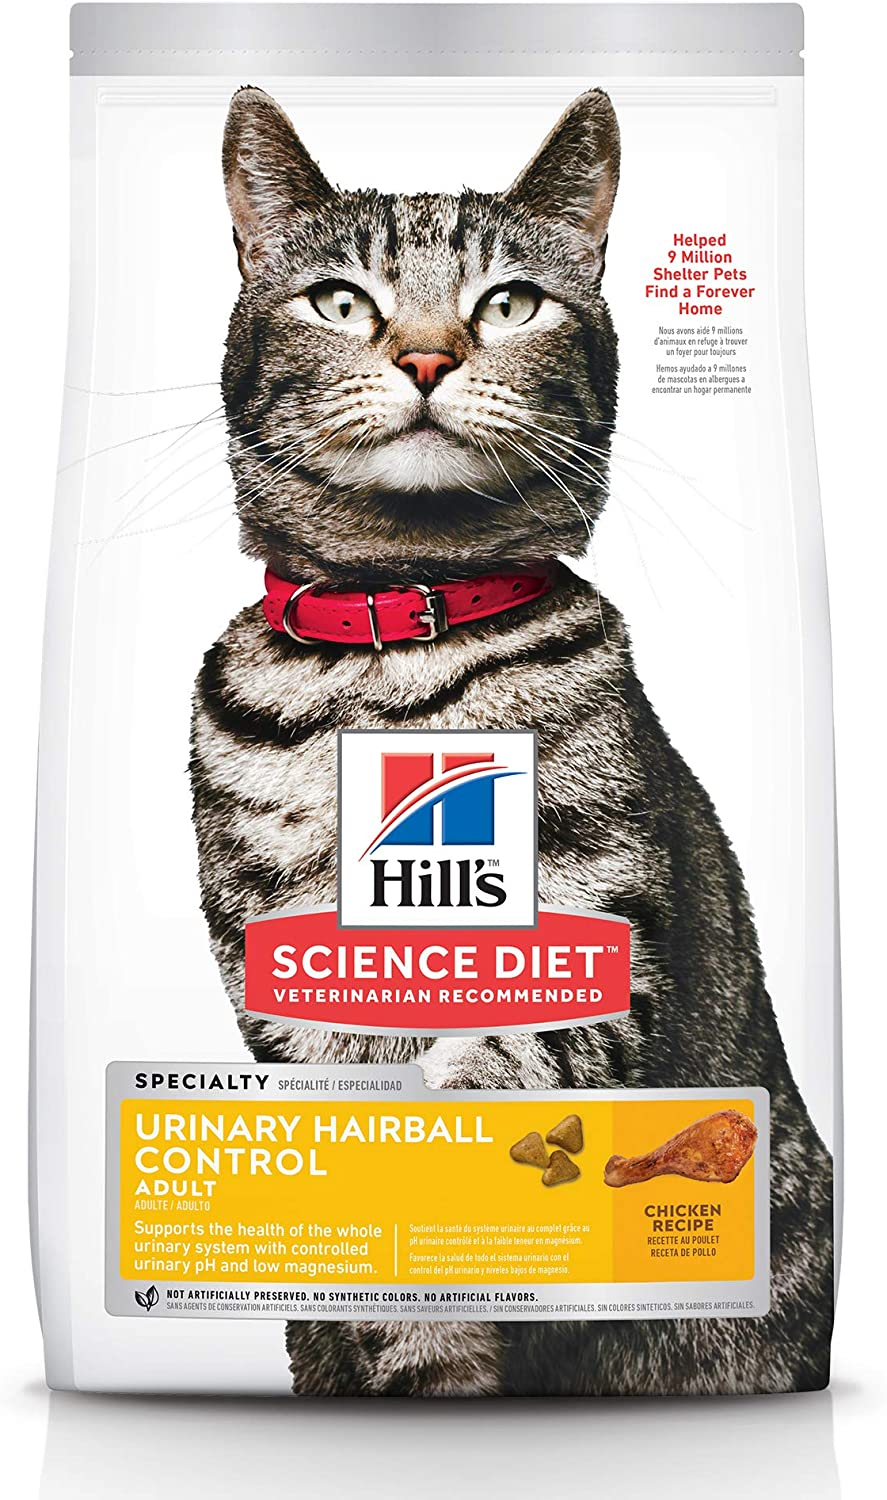 Hill's Science Diet Dry Cat Food, Adult, Urinary & Hairball Control, Chicken Recipe, 15.5 Lb Bag : Pet Supplies